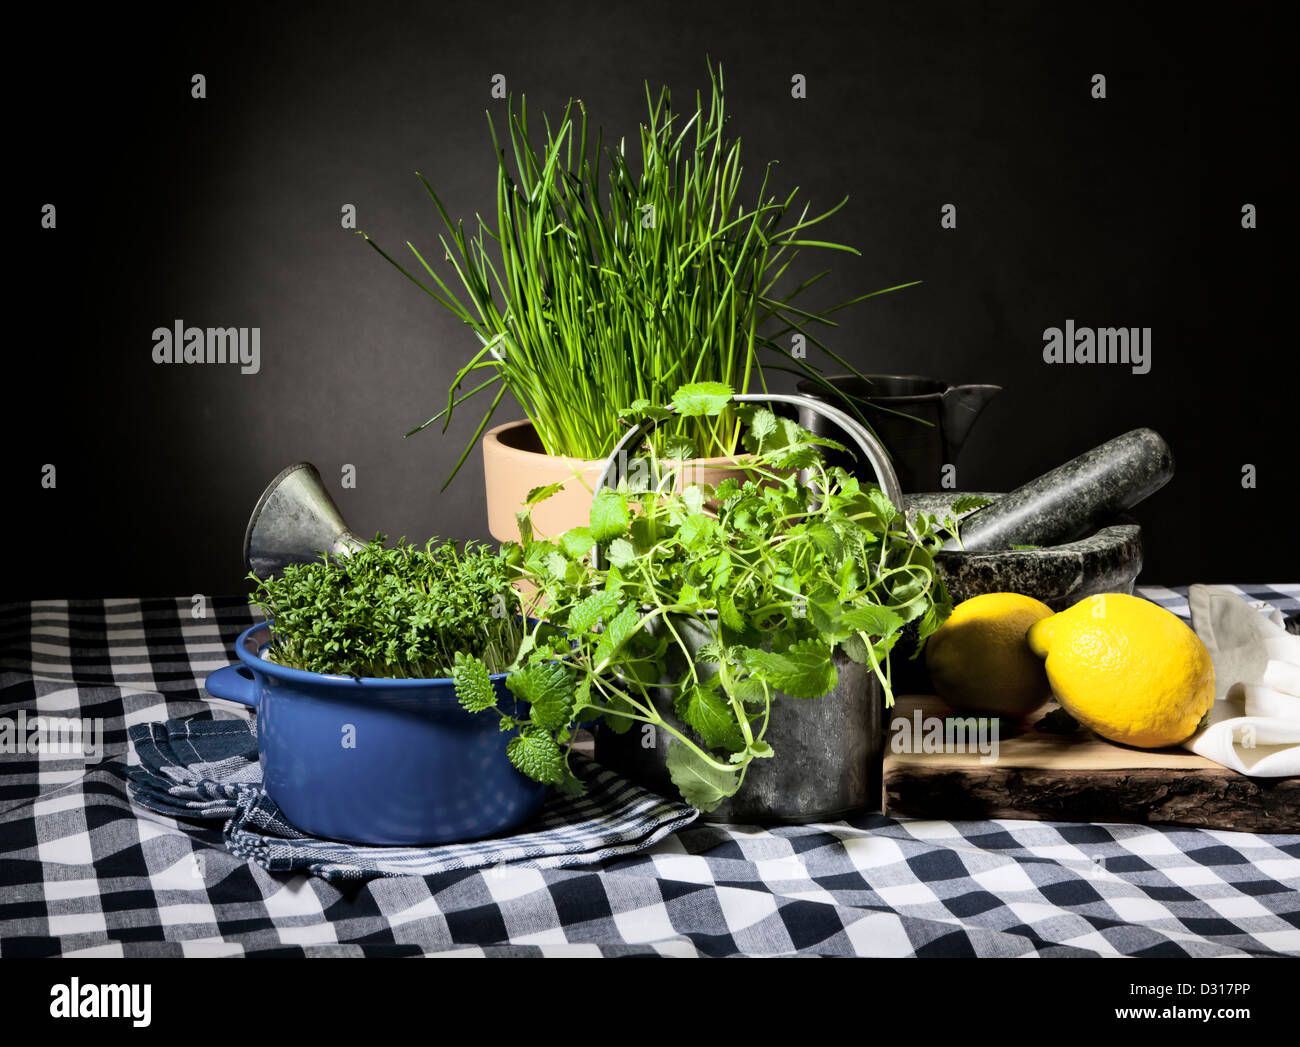 Still life with fresh herbs and kitchen utensils - Stock Image